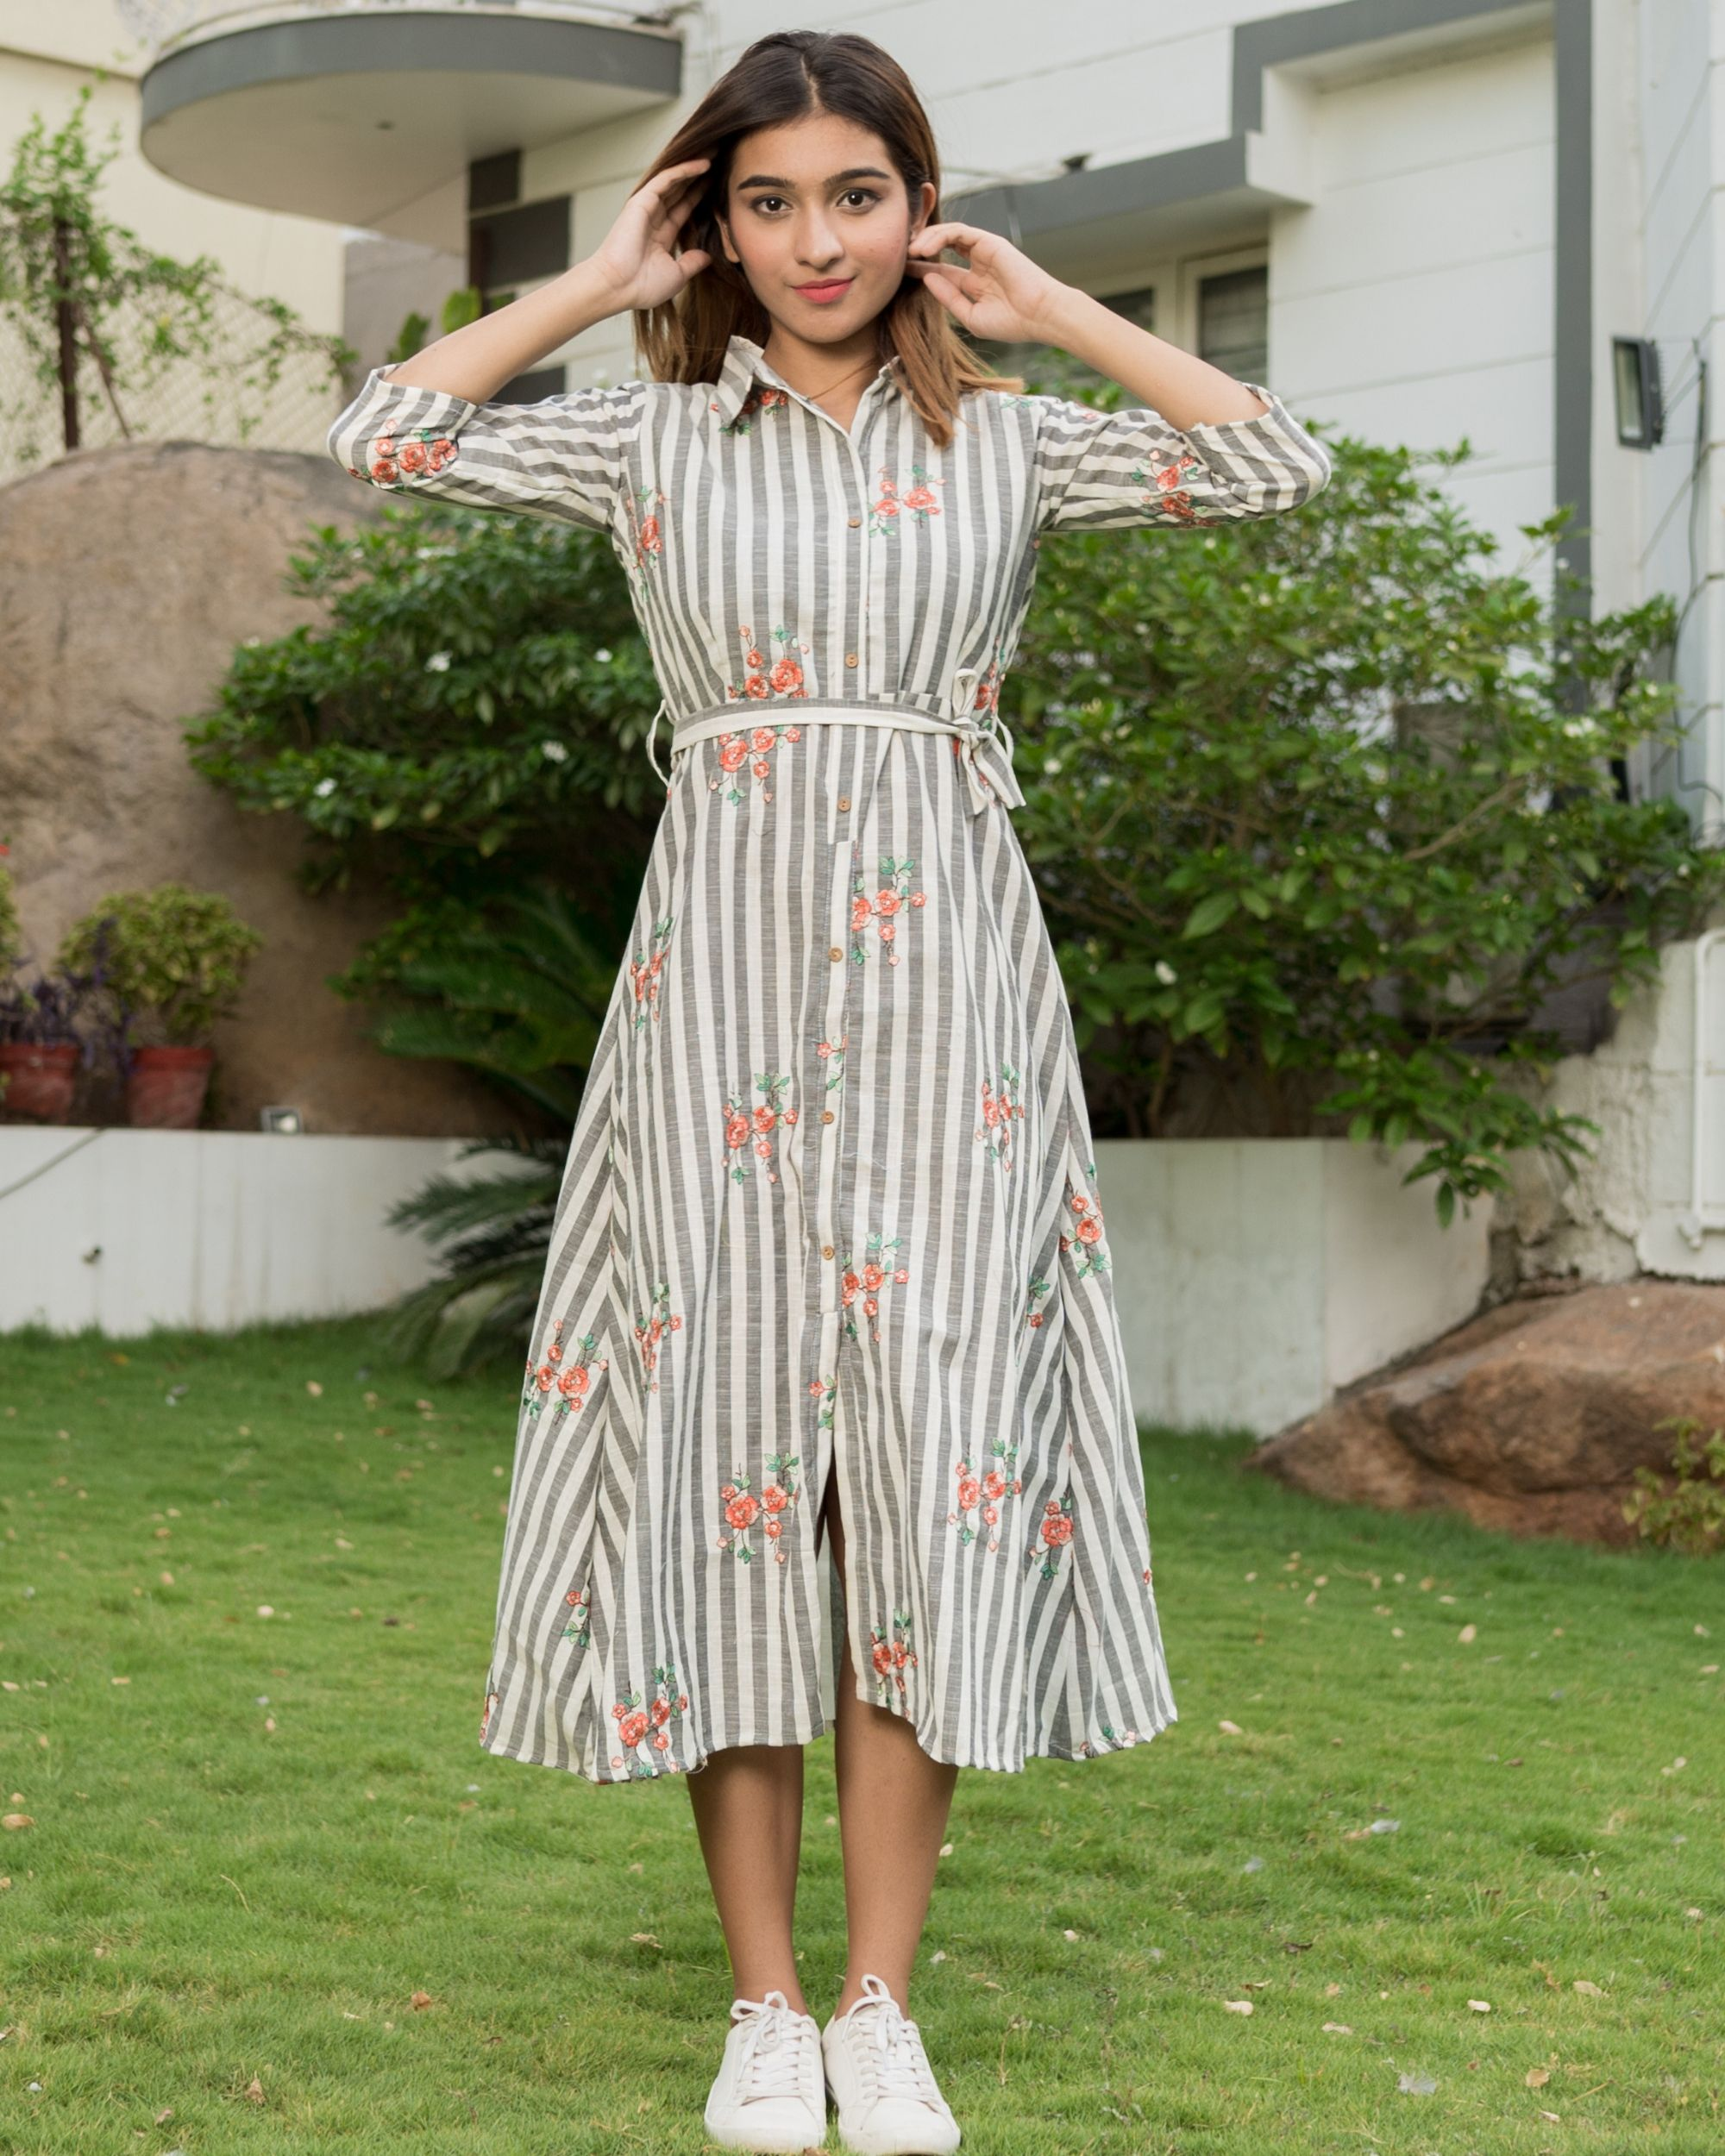 Floral embroidered grey and white stripes dress with belt tie up